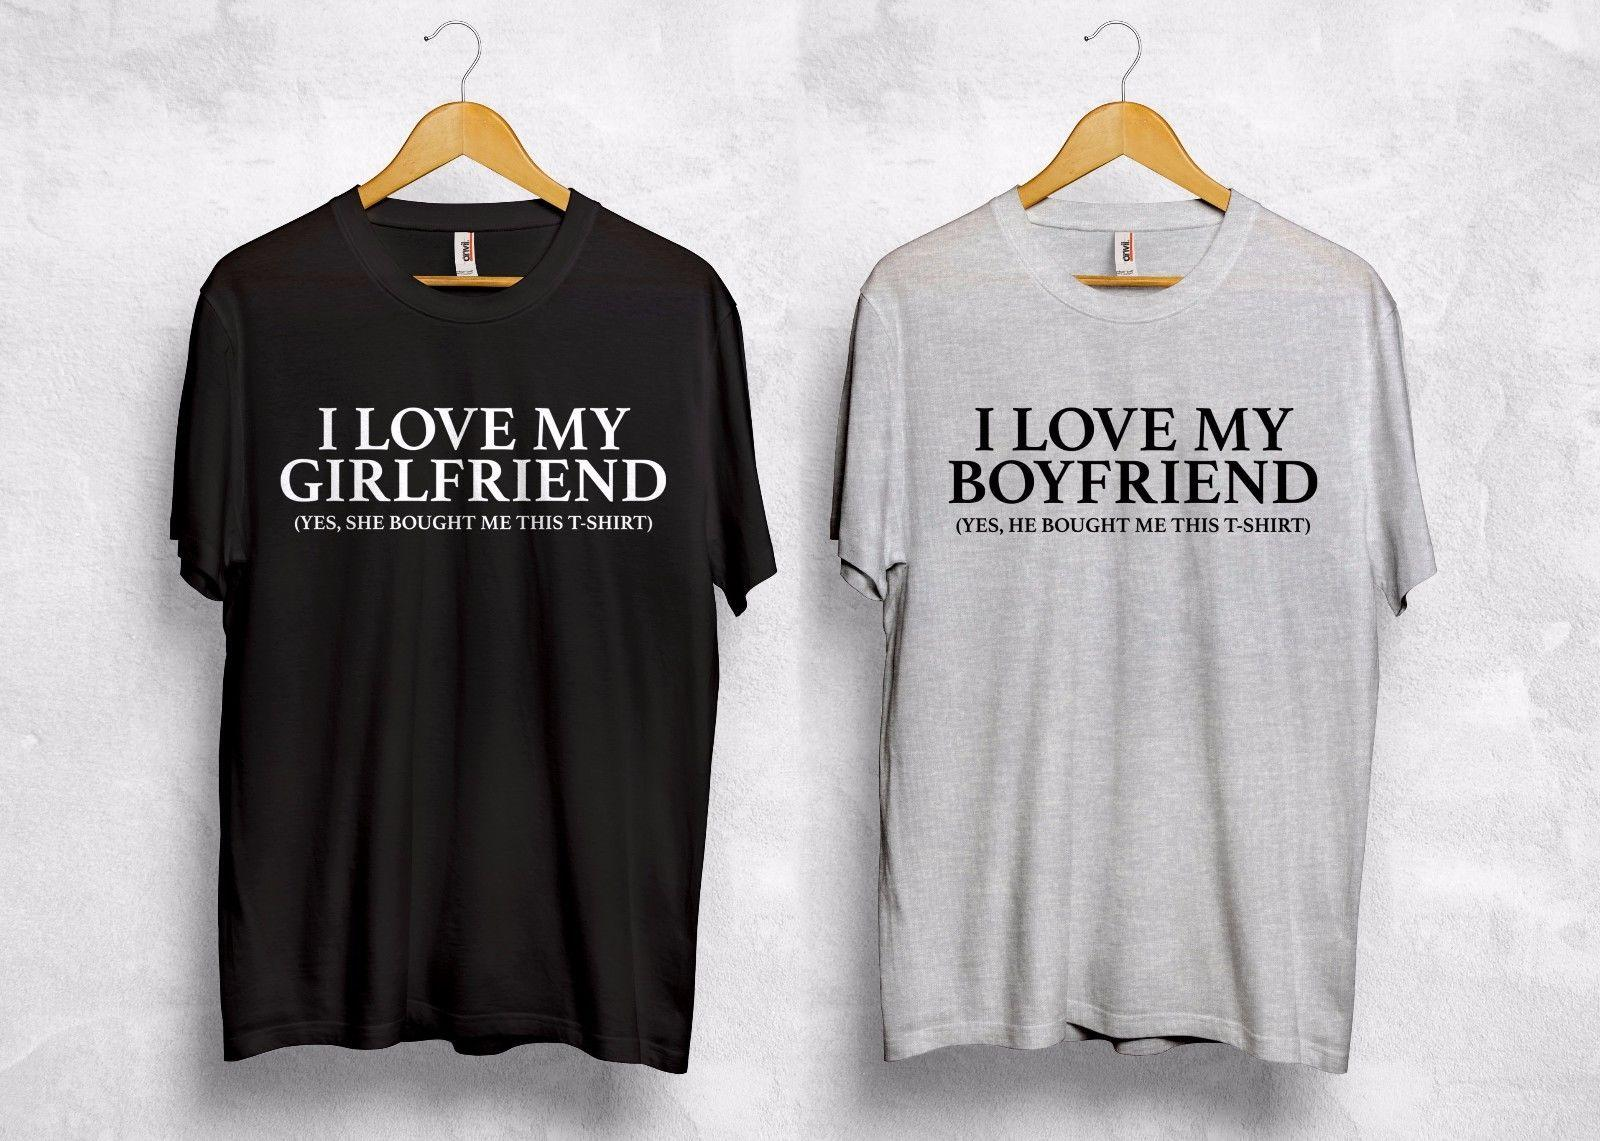 26eaeaa34 I Love My Girlfiend Boyfriend T Shirt Valentines Gift Couple Matching Funny  Joke Make T Shirts Online Tees Design From Vectorbomb, $11.01| DHgate.Com